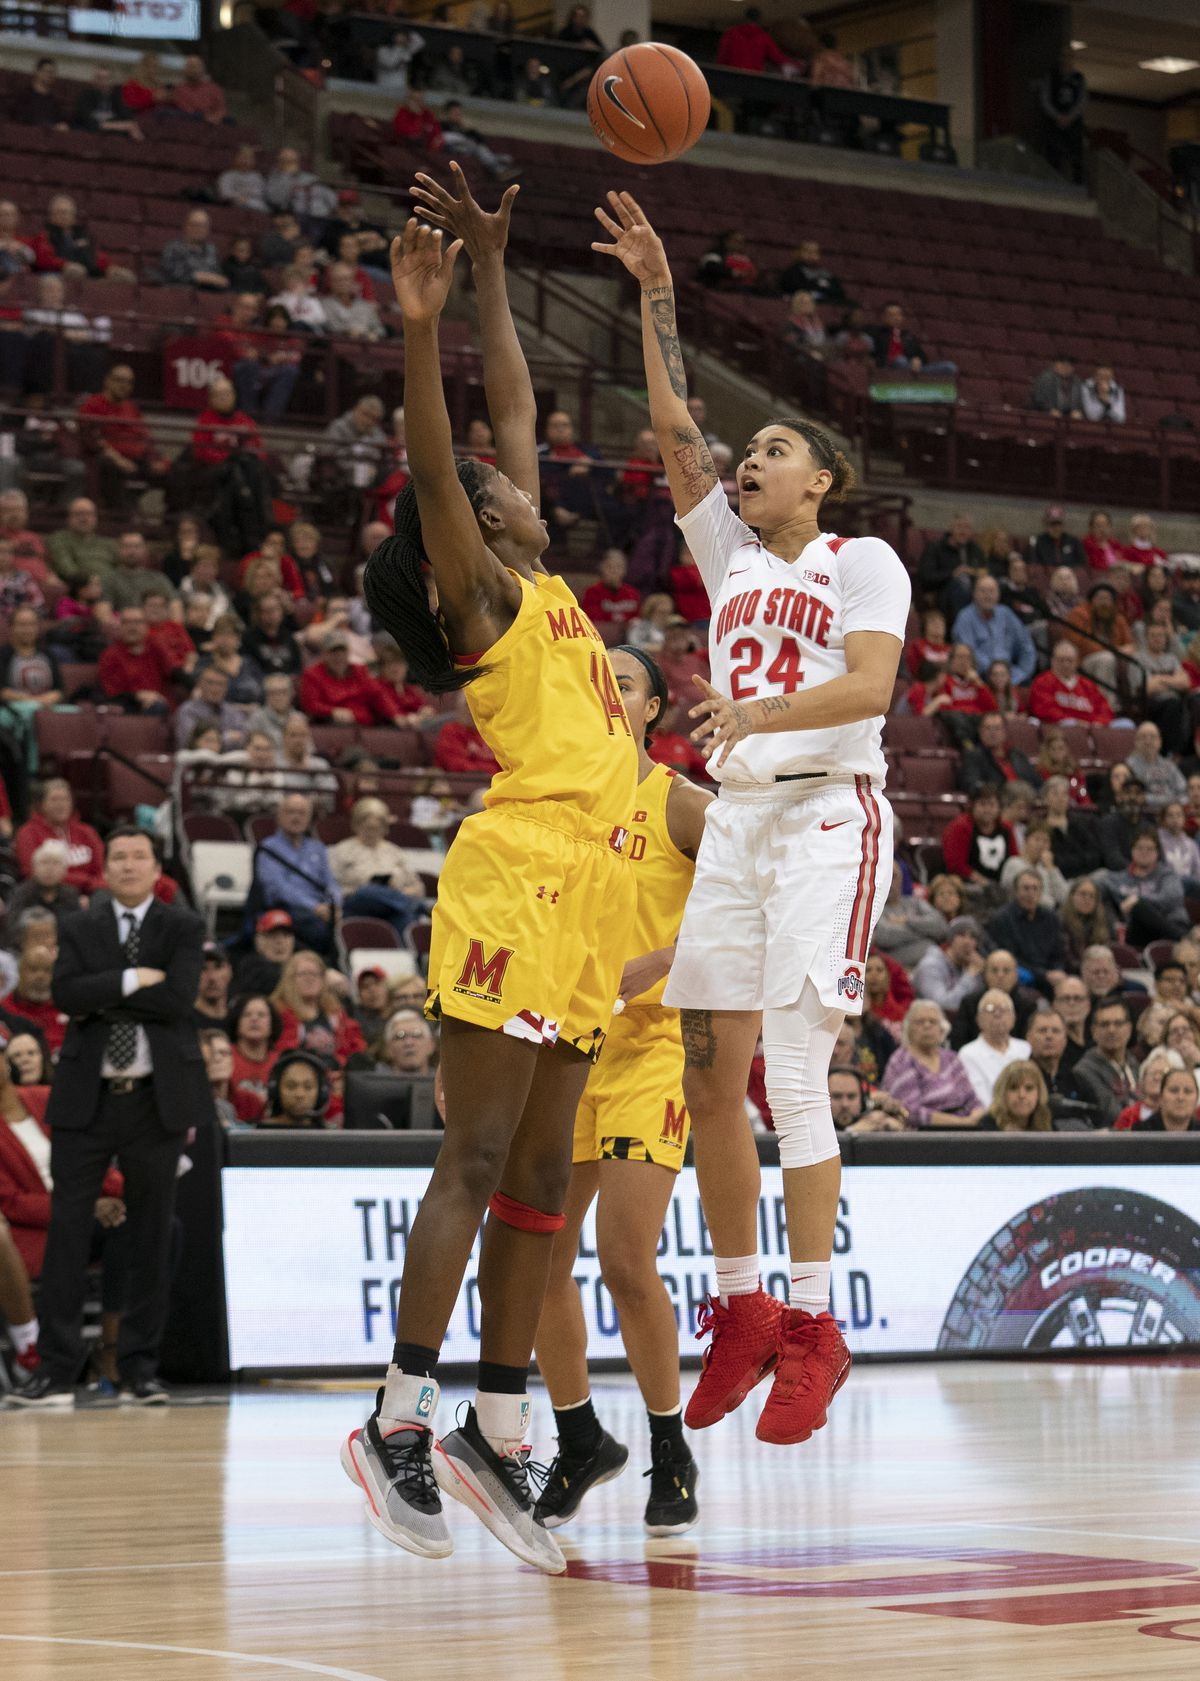 COLLEGE BASKETBALL: JAN 30 Women's Maryland at Ohio State